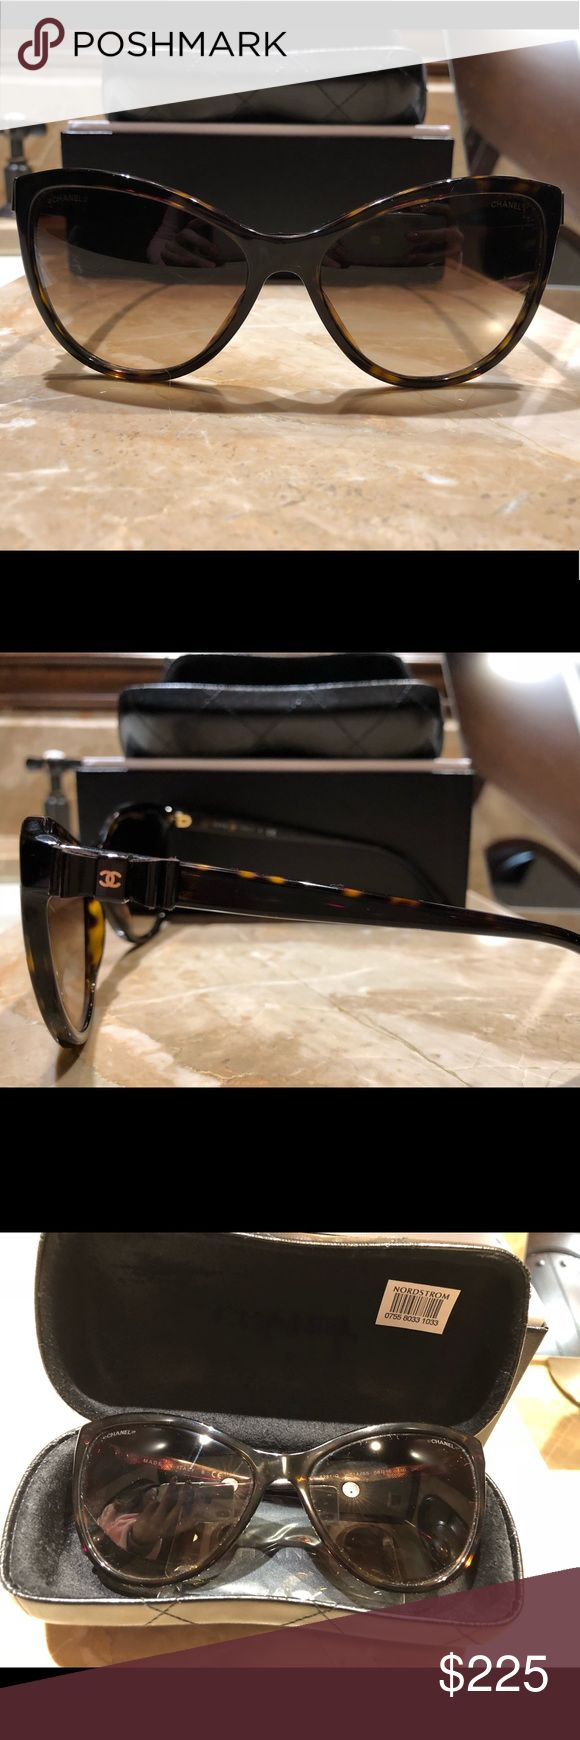 Chanel Cat Eye Sunglasses 100% Authentic Chanel sunglasses purchased at Nordstrom. In perfect condition with glasses case, lens cleaner and box.   Tortoise Color. Style #5281q CHANEL Accessories Sunglasses